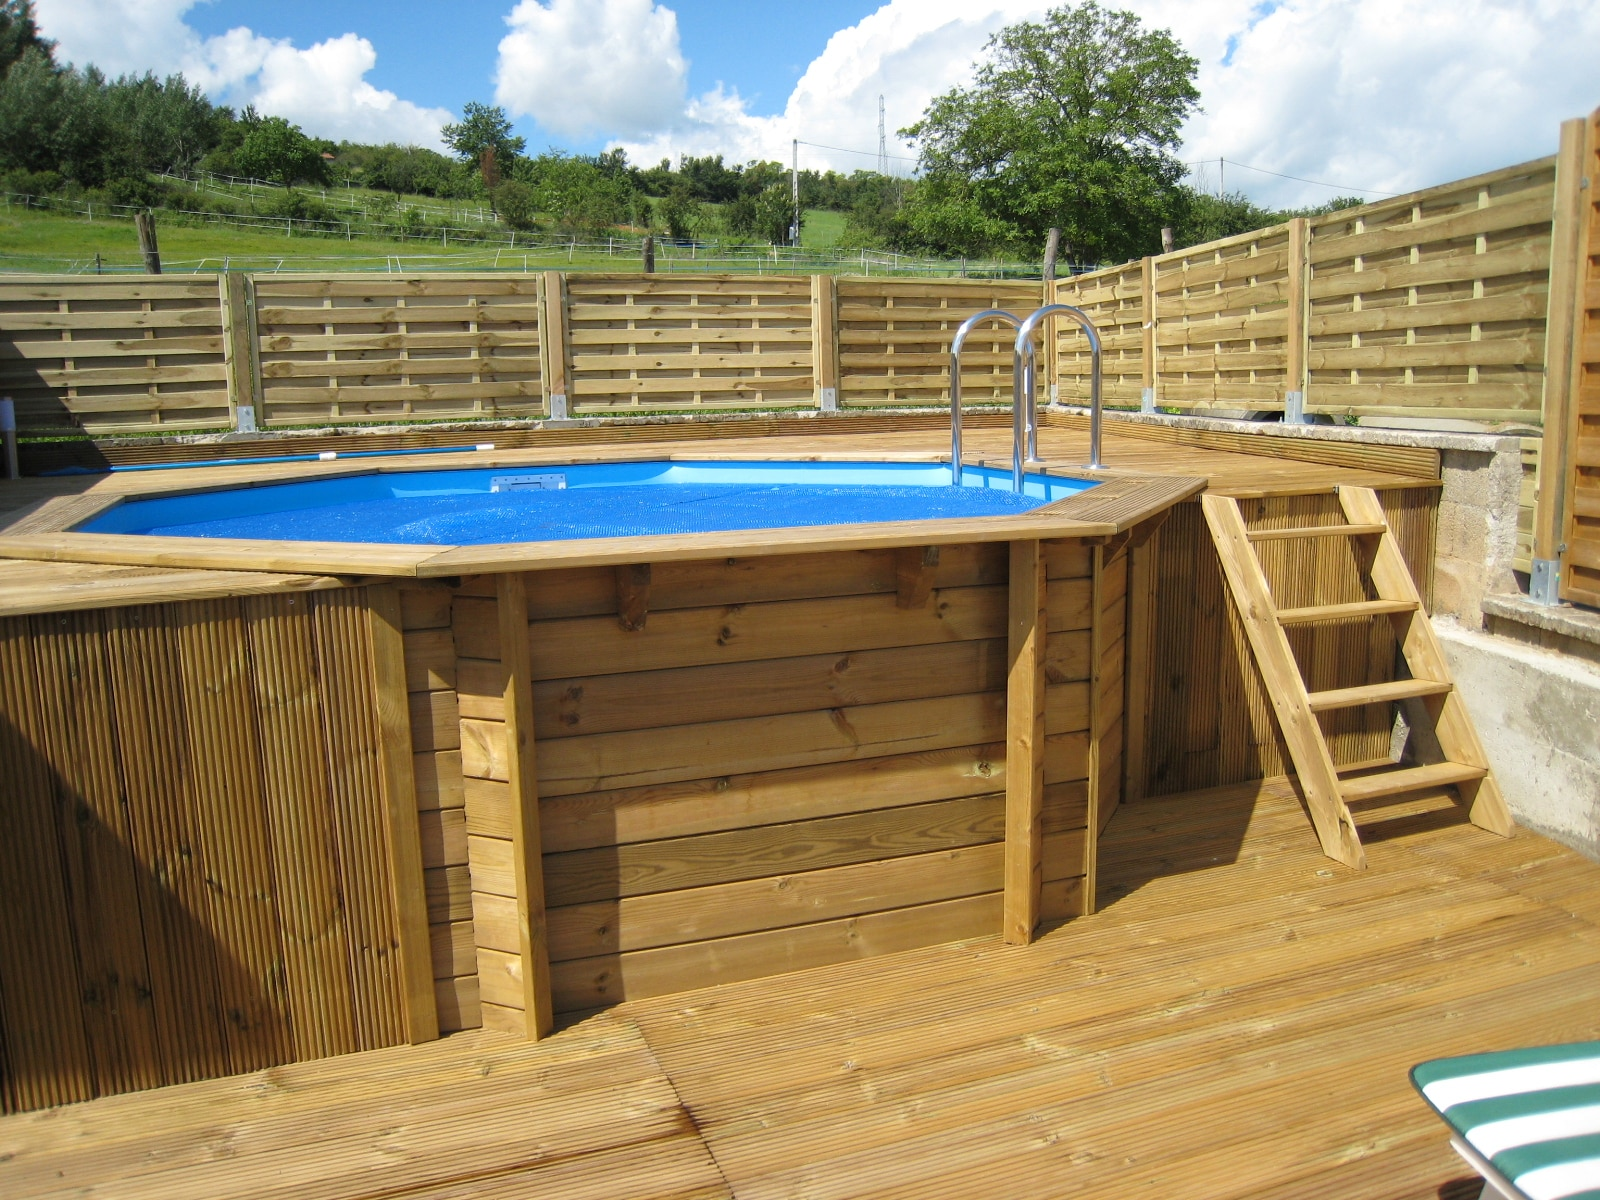 Comment monter une piscine en bois for Piscine autoportante en bois